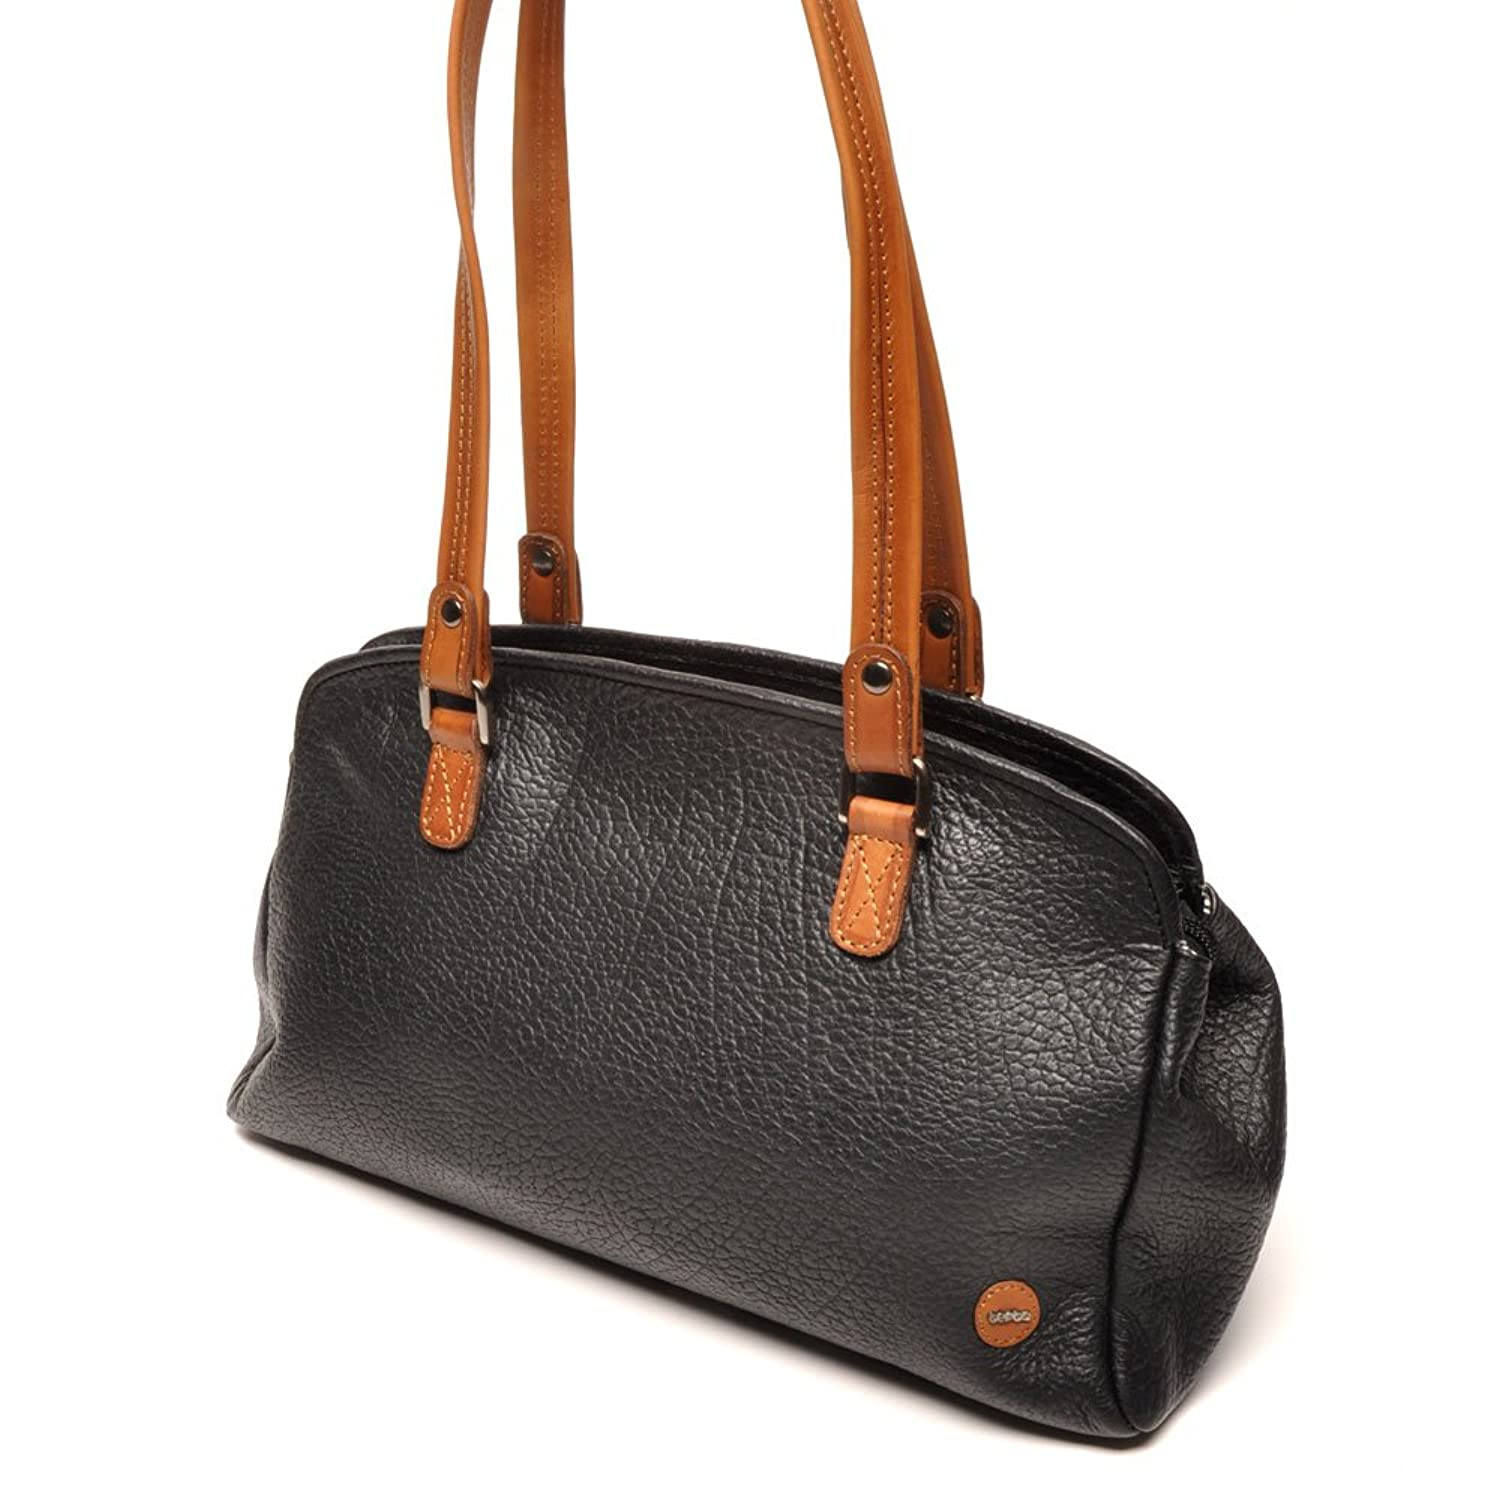 berba Chamonix 404 - Cross over bag in black